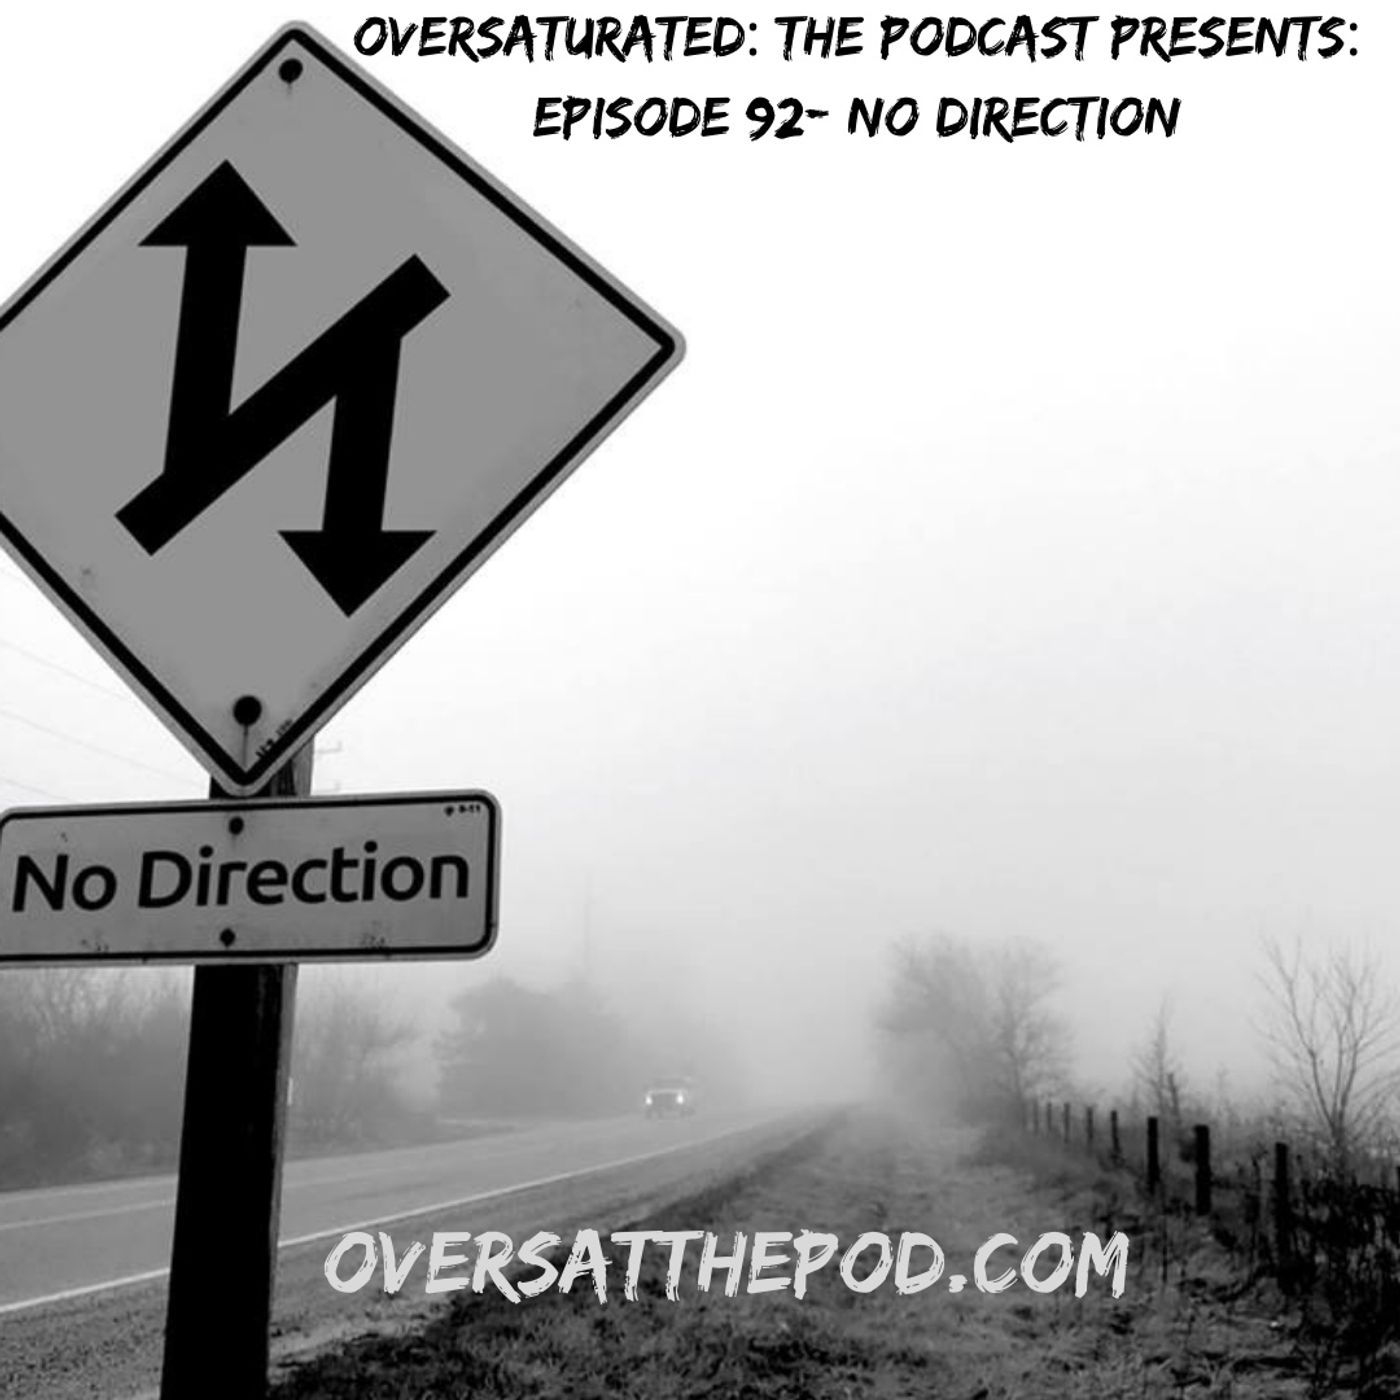 Episode 92 - No Direction